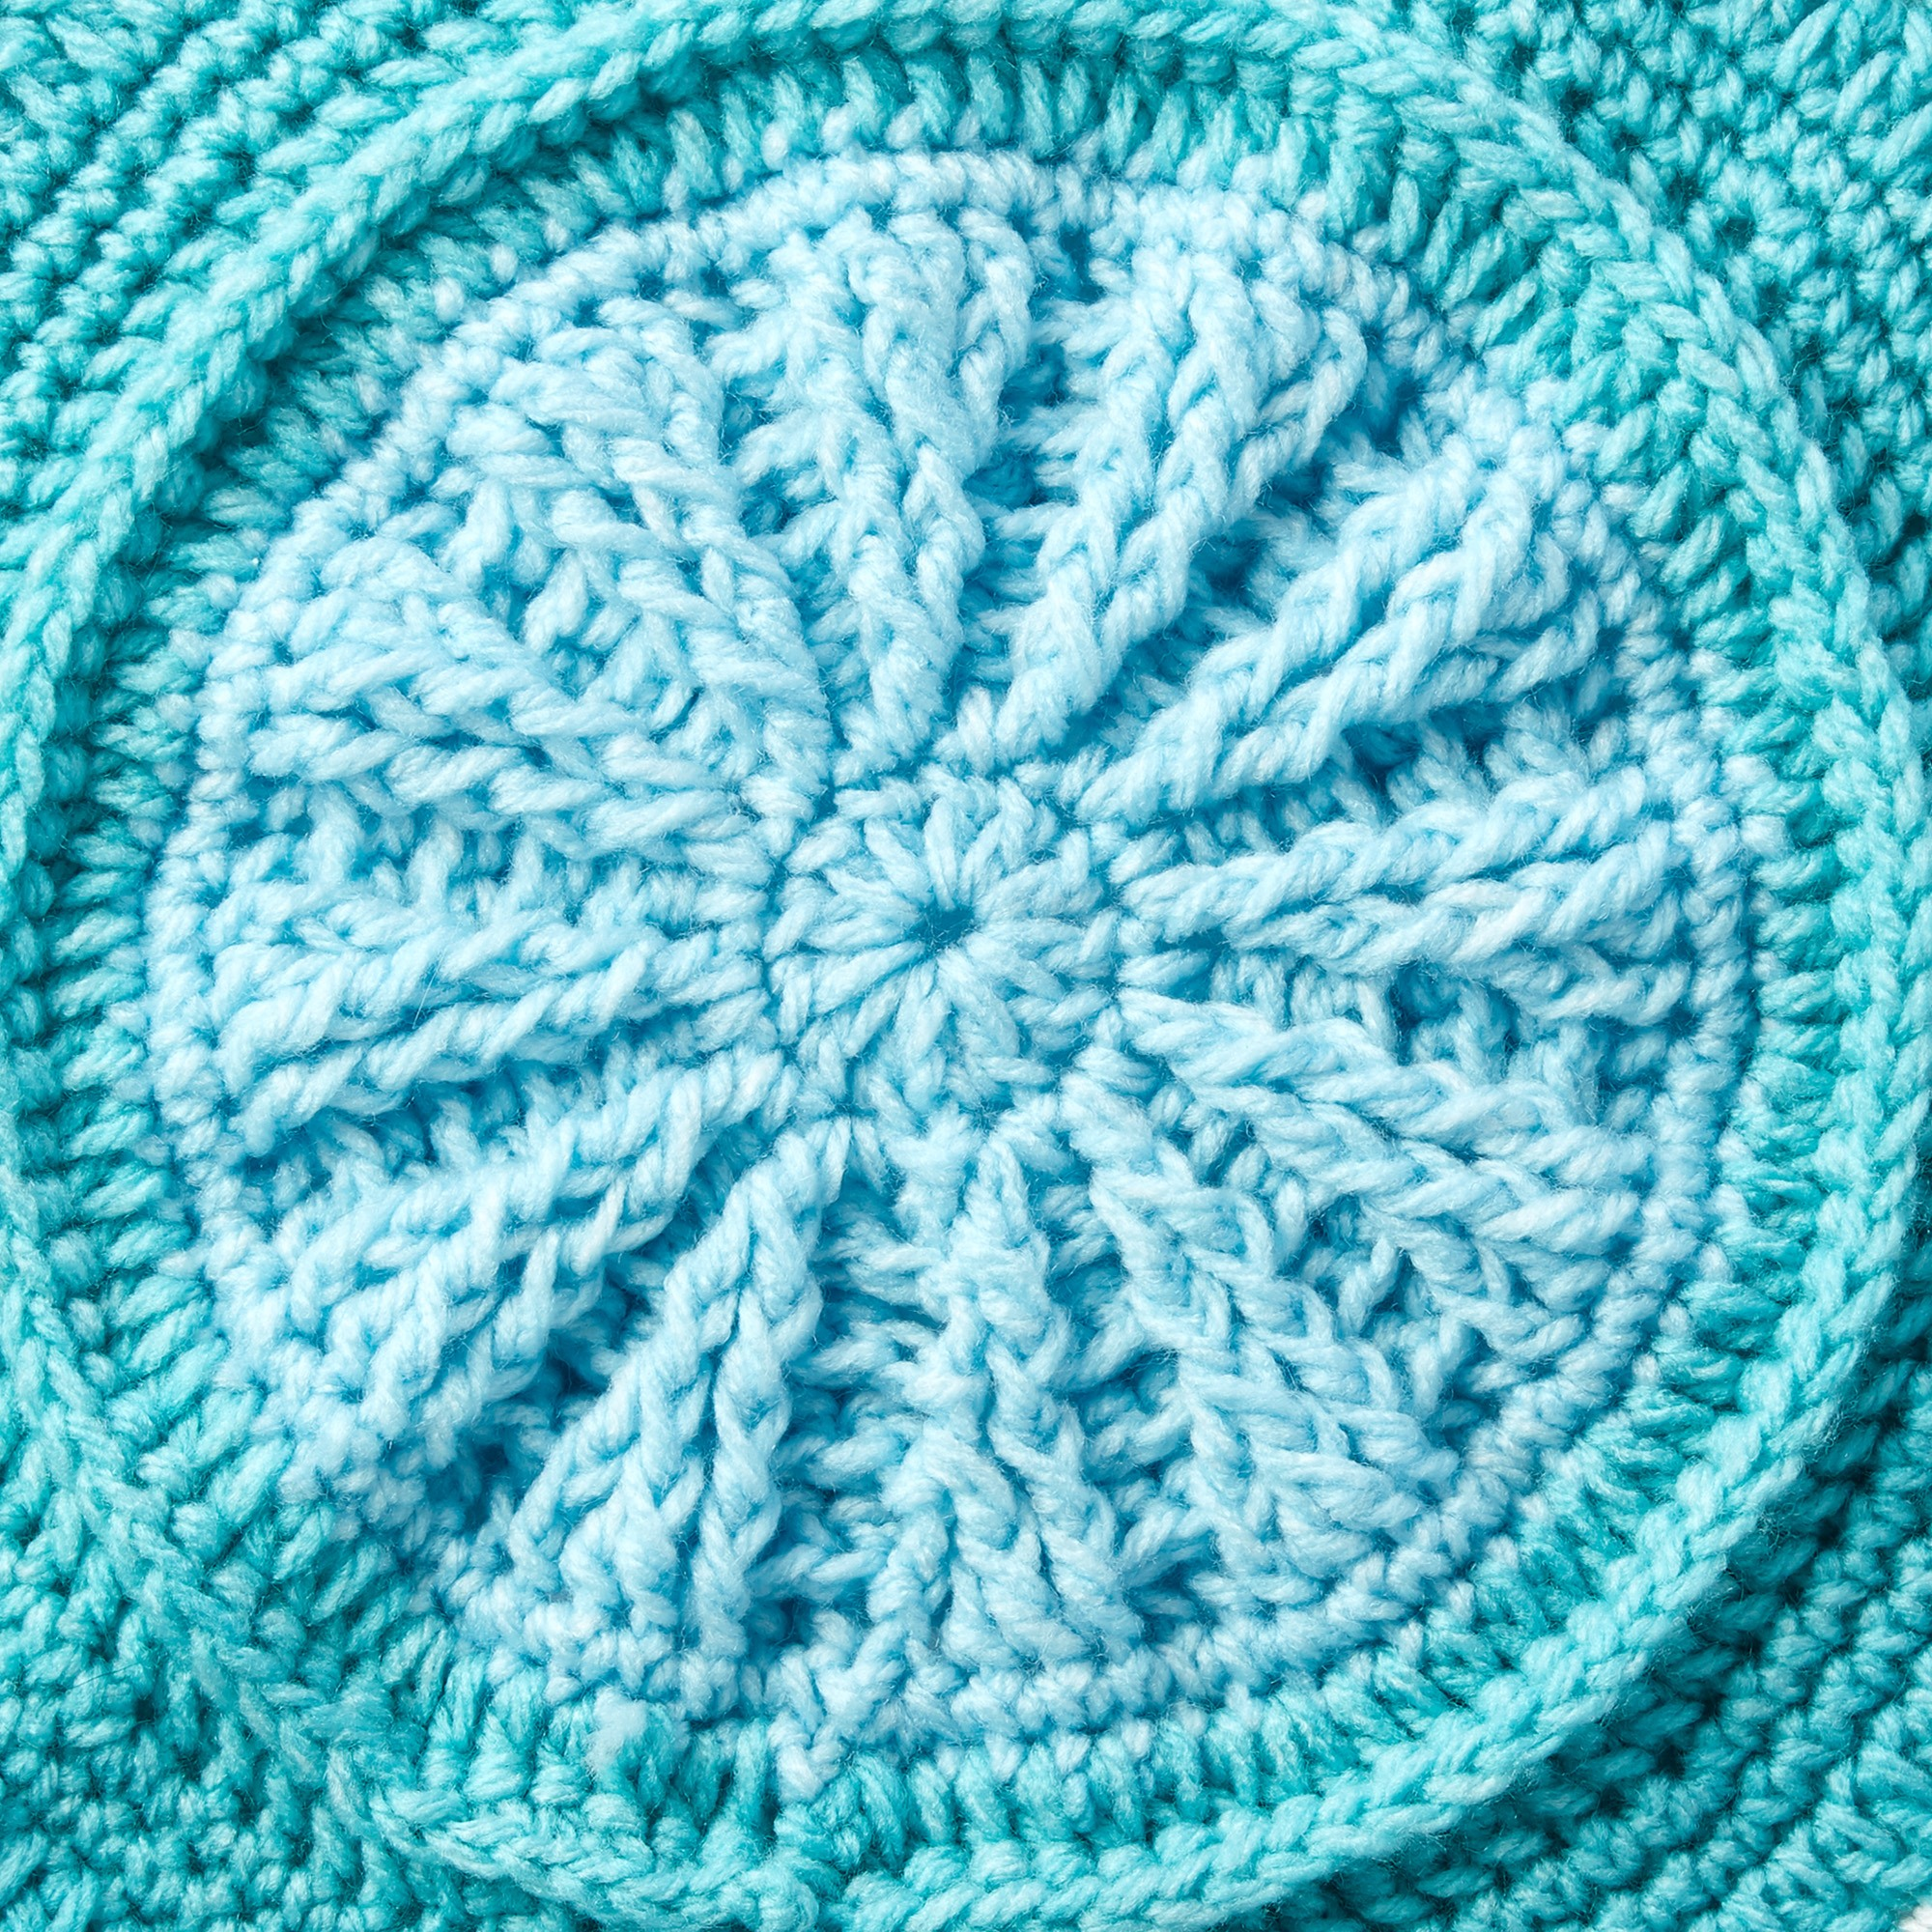 Study of Earth Afghan Crochet Along with The Crochet Crowd